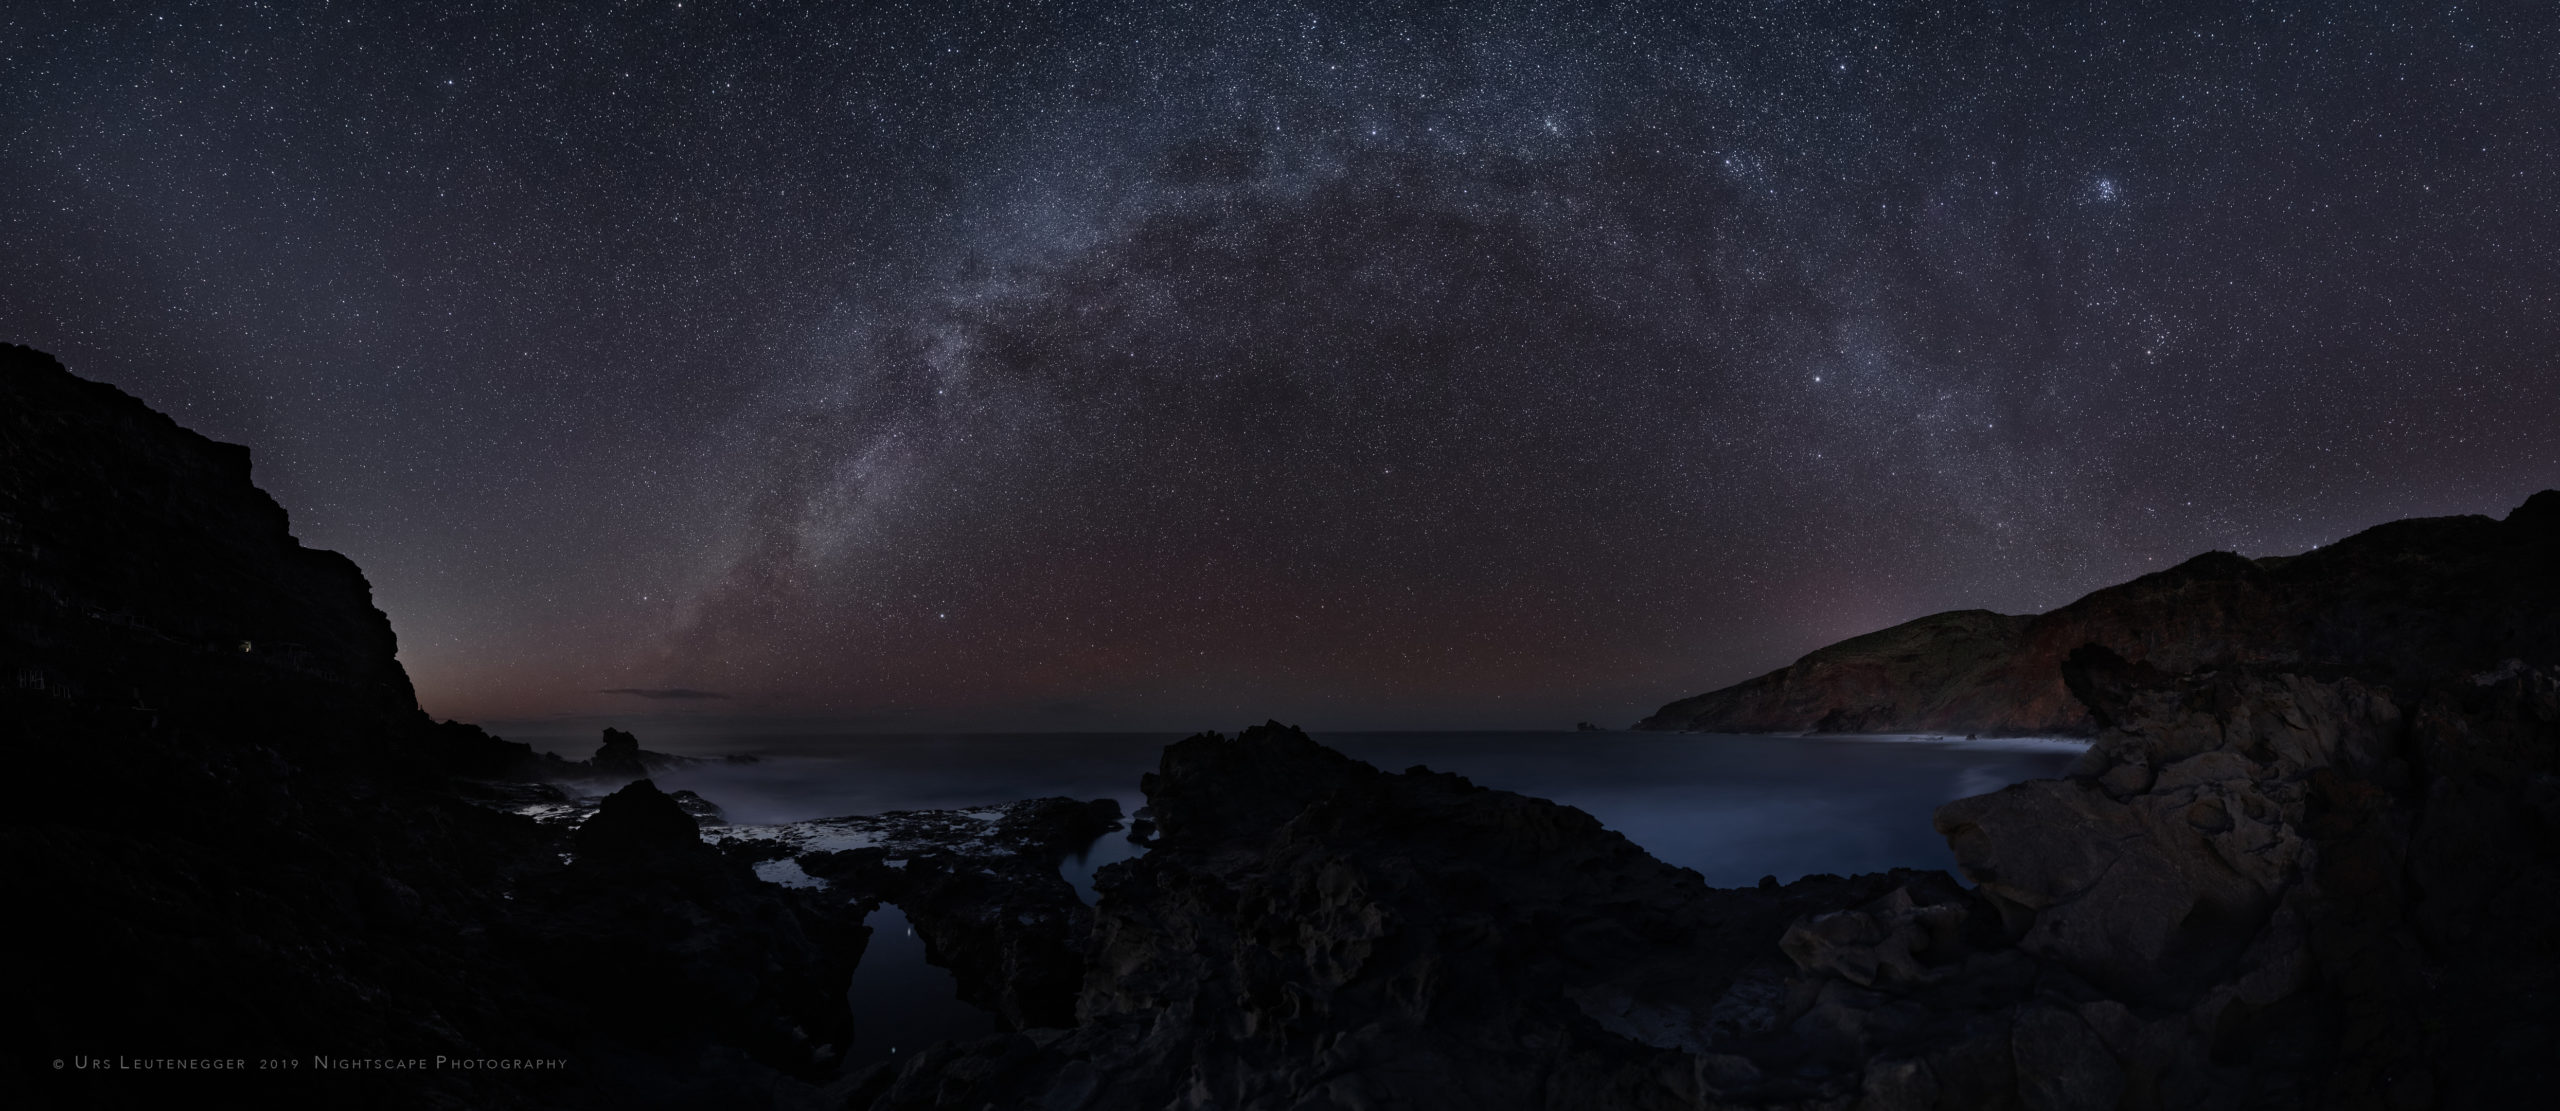 Milky Way over low tide northwest-coast of La Palma. Mirrored stars Vega and Deneb in the sea, Lyra and Swan, Cassiopeia and Pleiades and Hyades in the sky. Zodiacal partly light behind coastal silhouette.